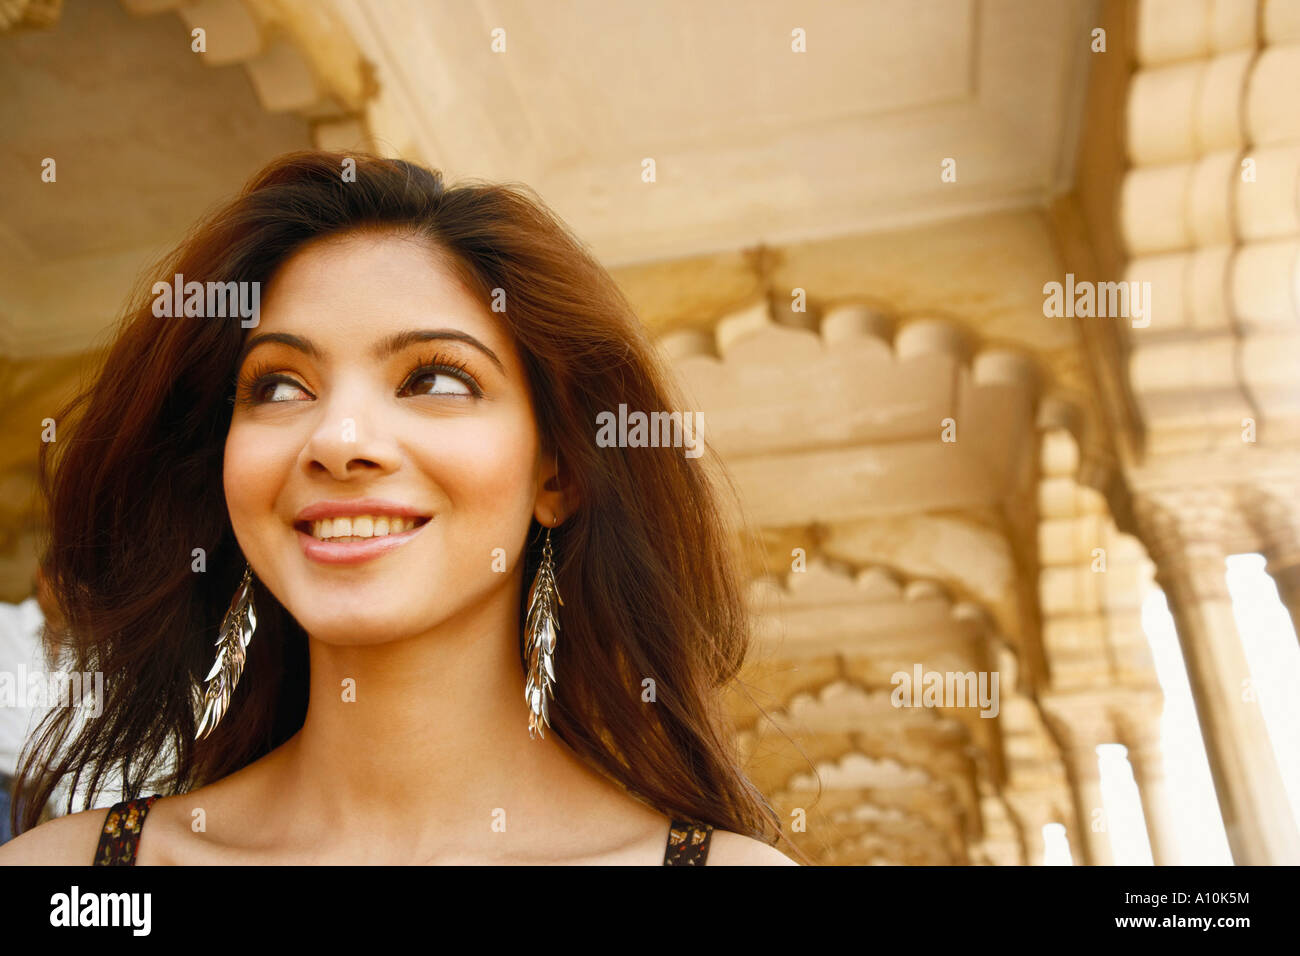 Close-up of a young woman smiling, fort d'Agra, Agra, Uttar Pradesh, Inde Banque D'Images